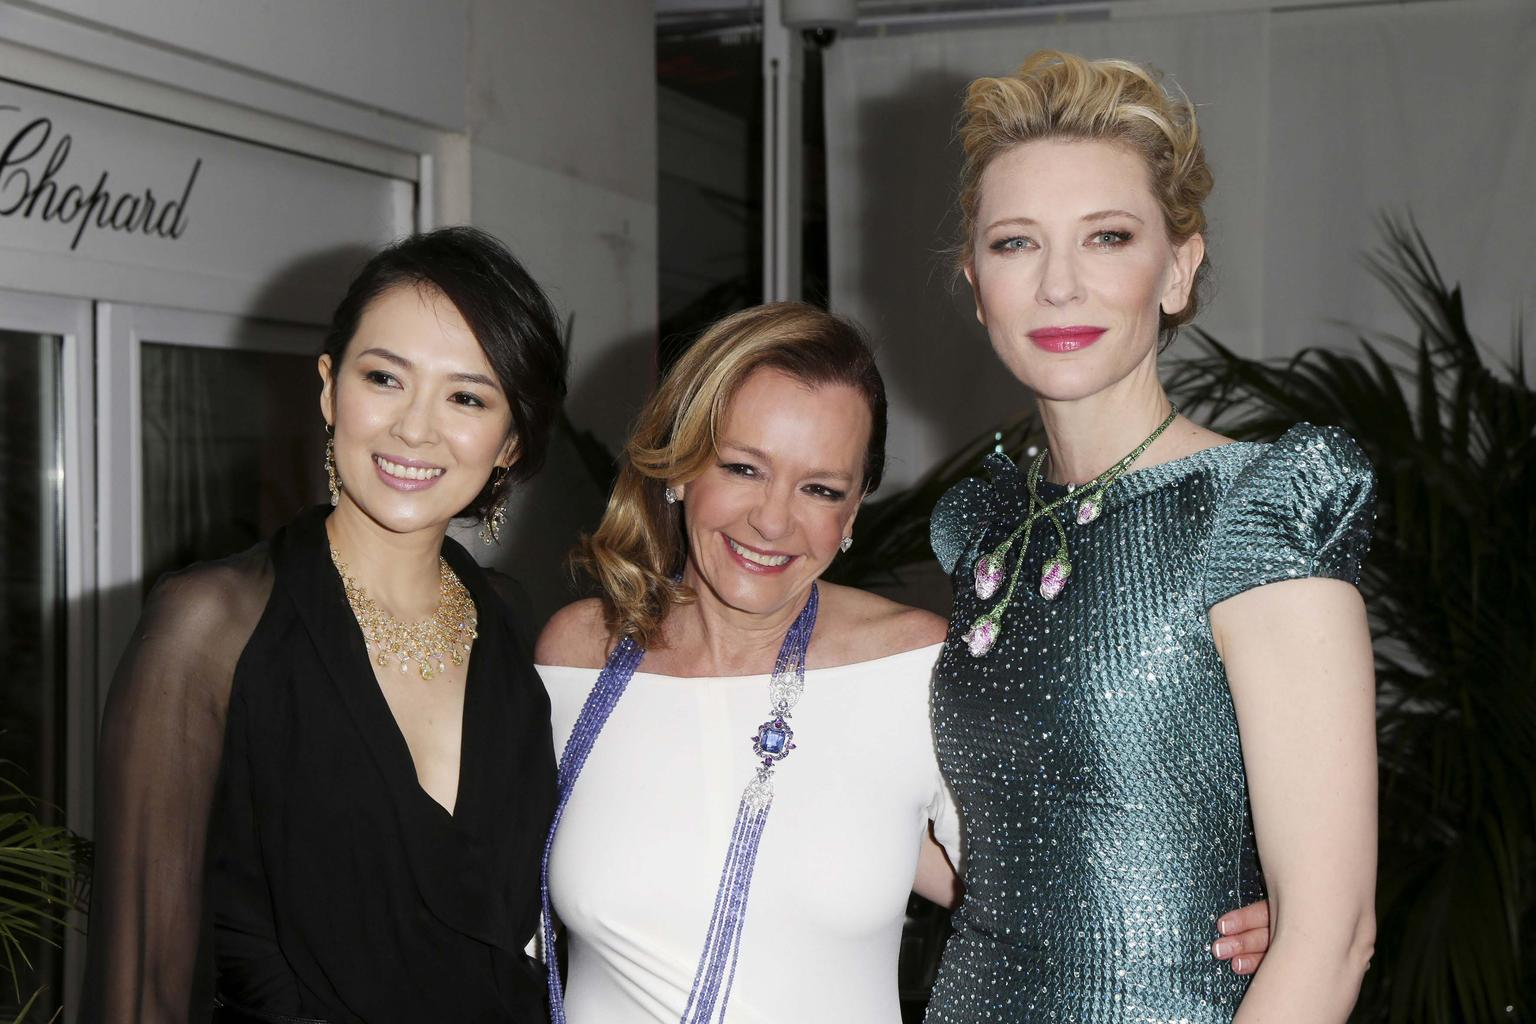 After a quick change of clothes, Cate Blanchett, pictured beside Caroline Scheufele, centre, and Zhang Ziyi, arrived at the Trophée Chopard 2014 party in a dress worthy of any red carpet, paired with a tsavorite, pink sapphire and ruby floral necklace fro